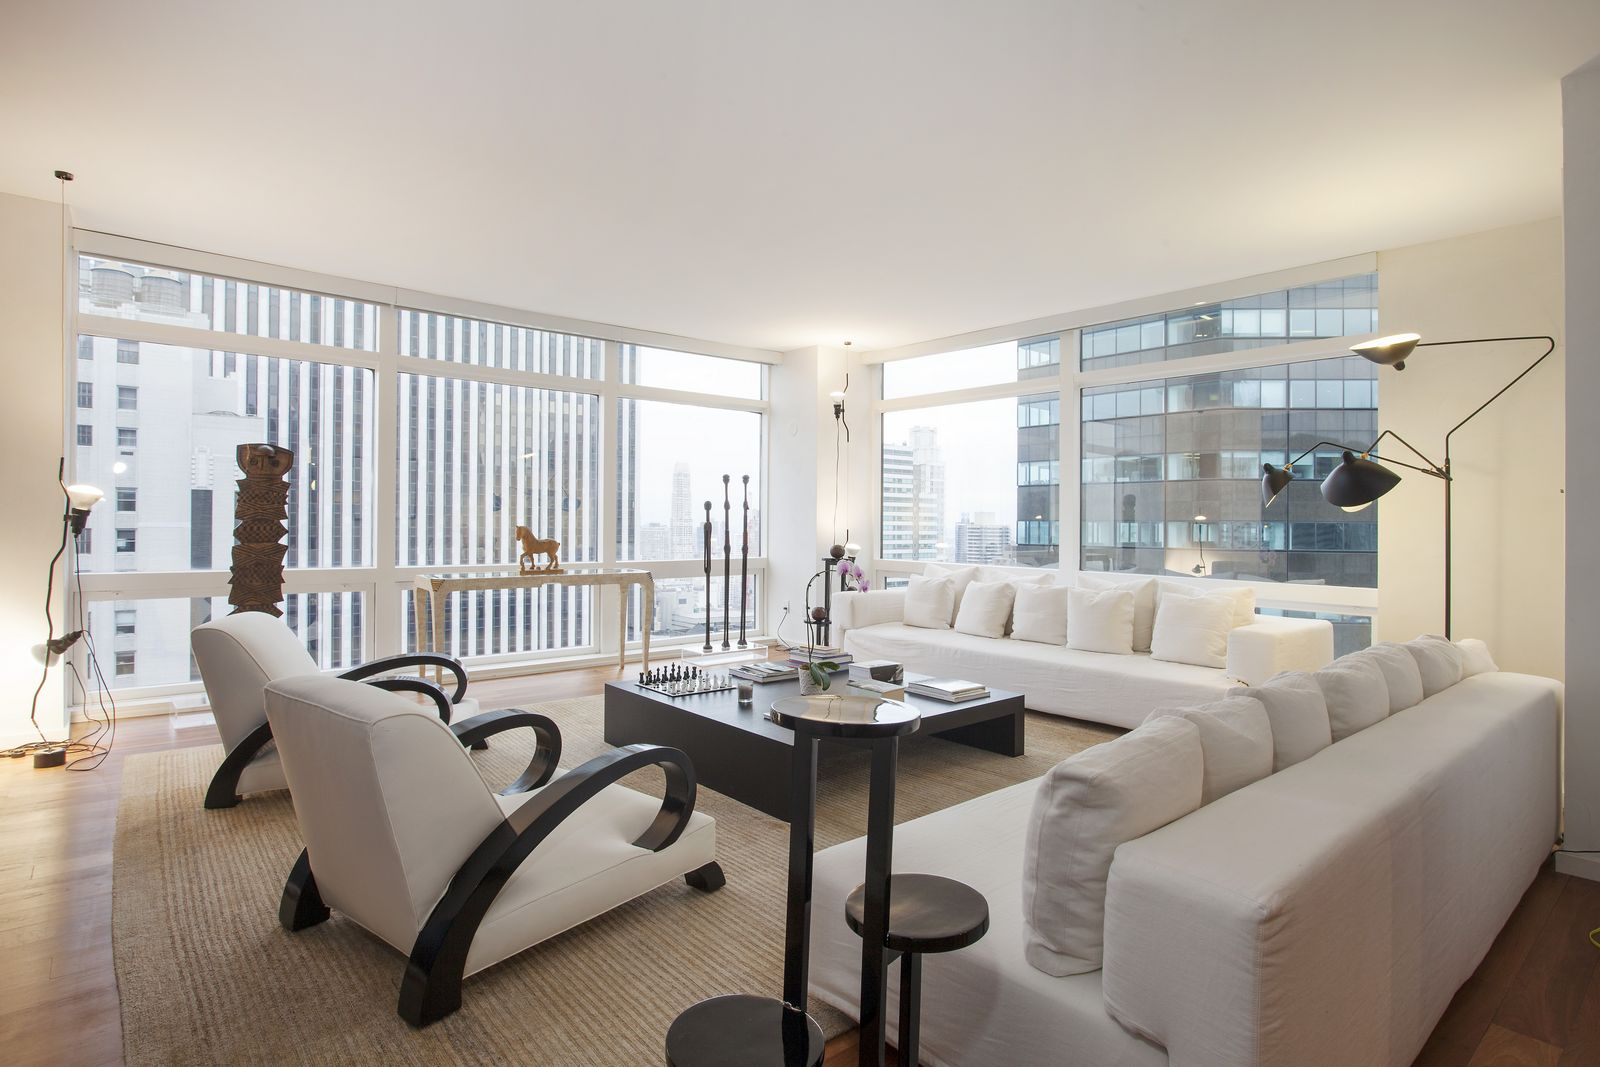 Stunning 10 million new york city apartment for sale for Luxury apartments in new york city